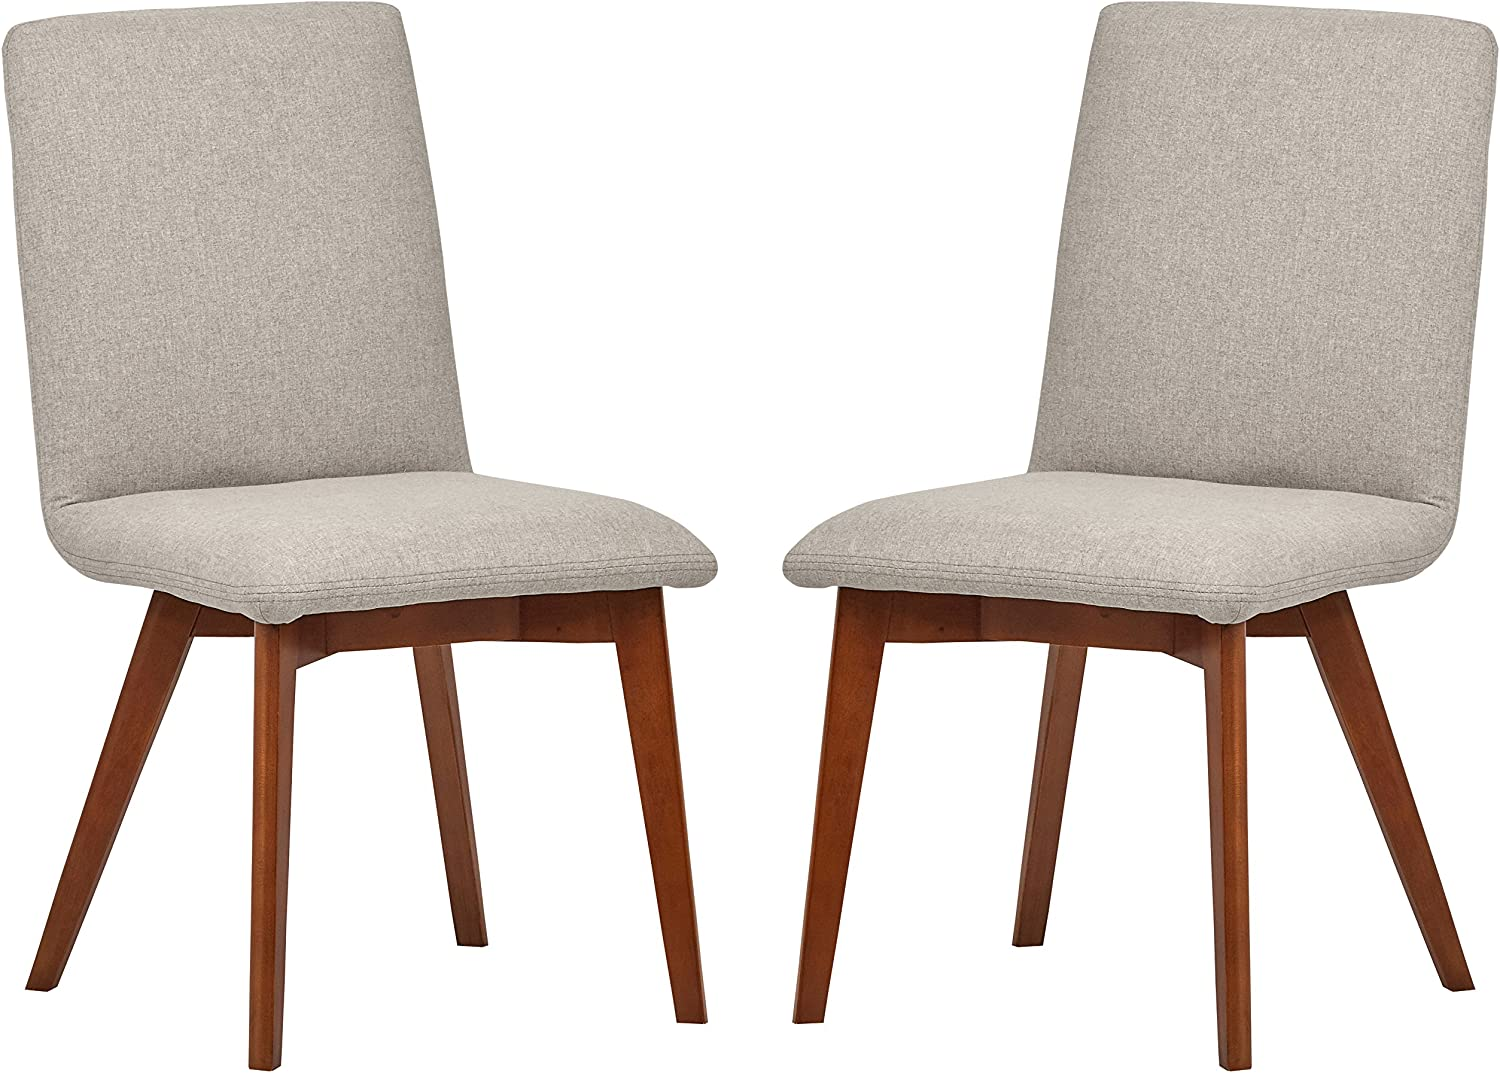 Amazon Brand – Rivet Ricky Mid-Century Modern Set of 2 Upholstered Dining Room Kitchen Chairs, 37 Inch Height, Felt Grey